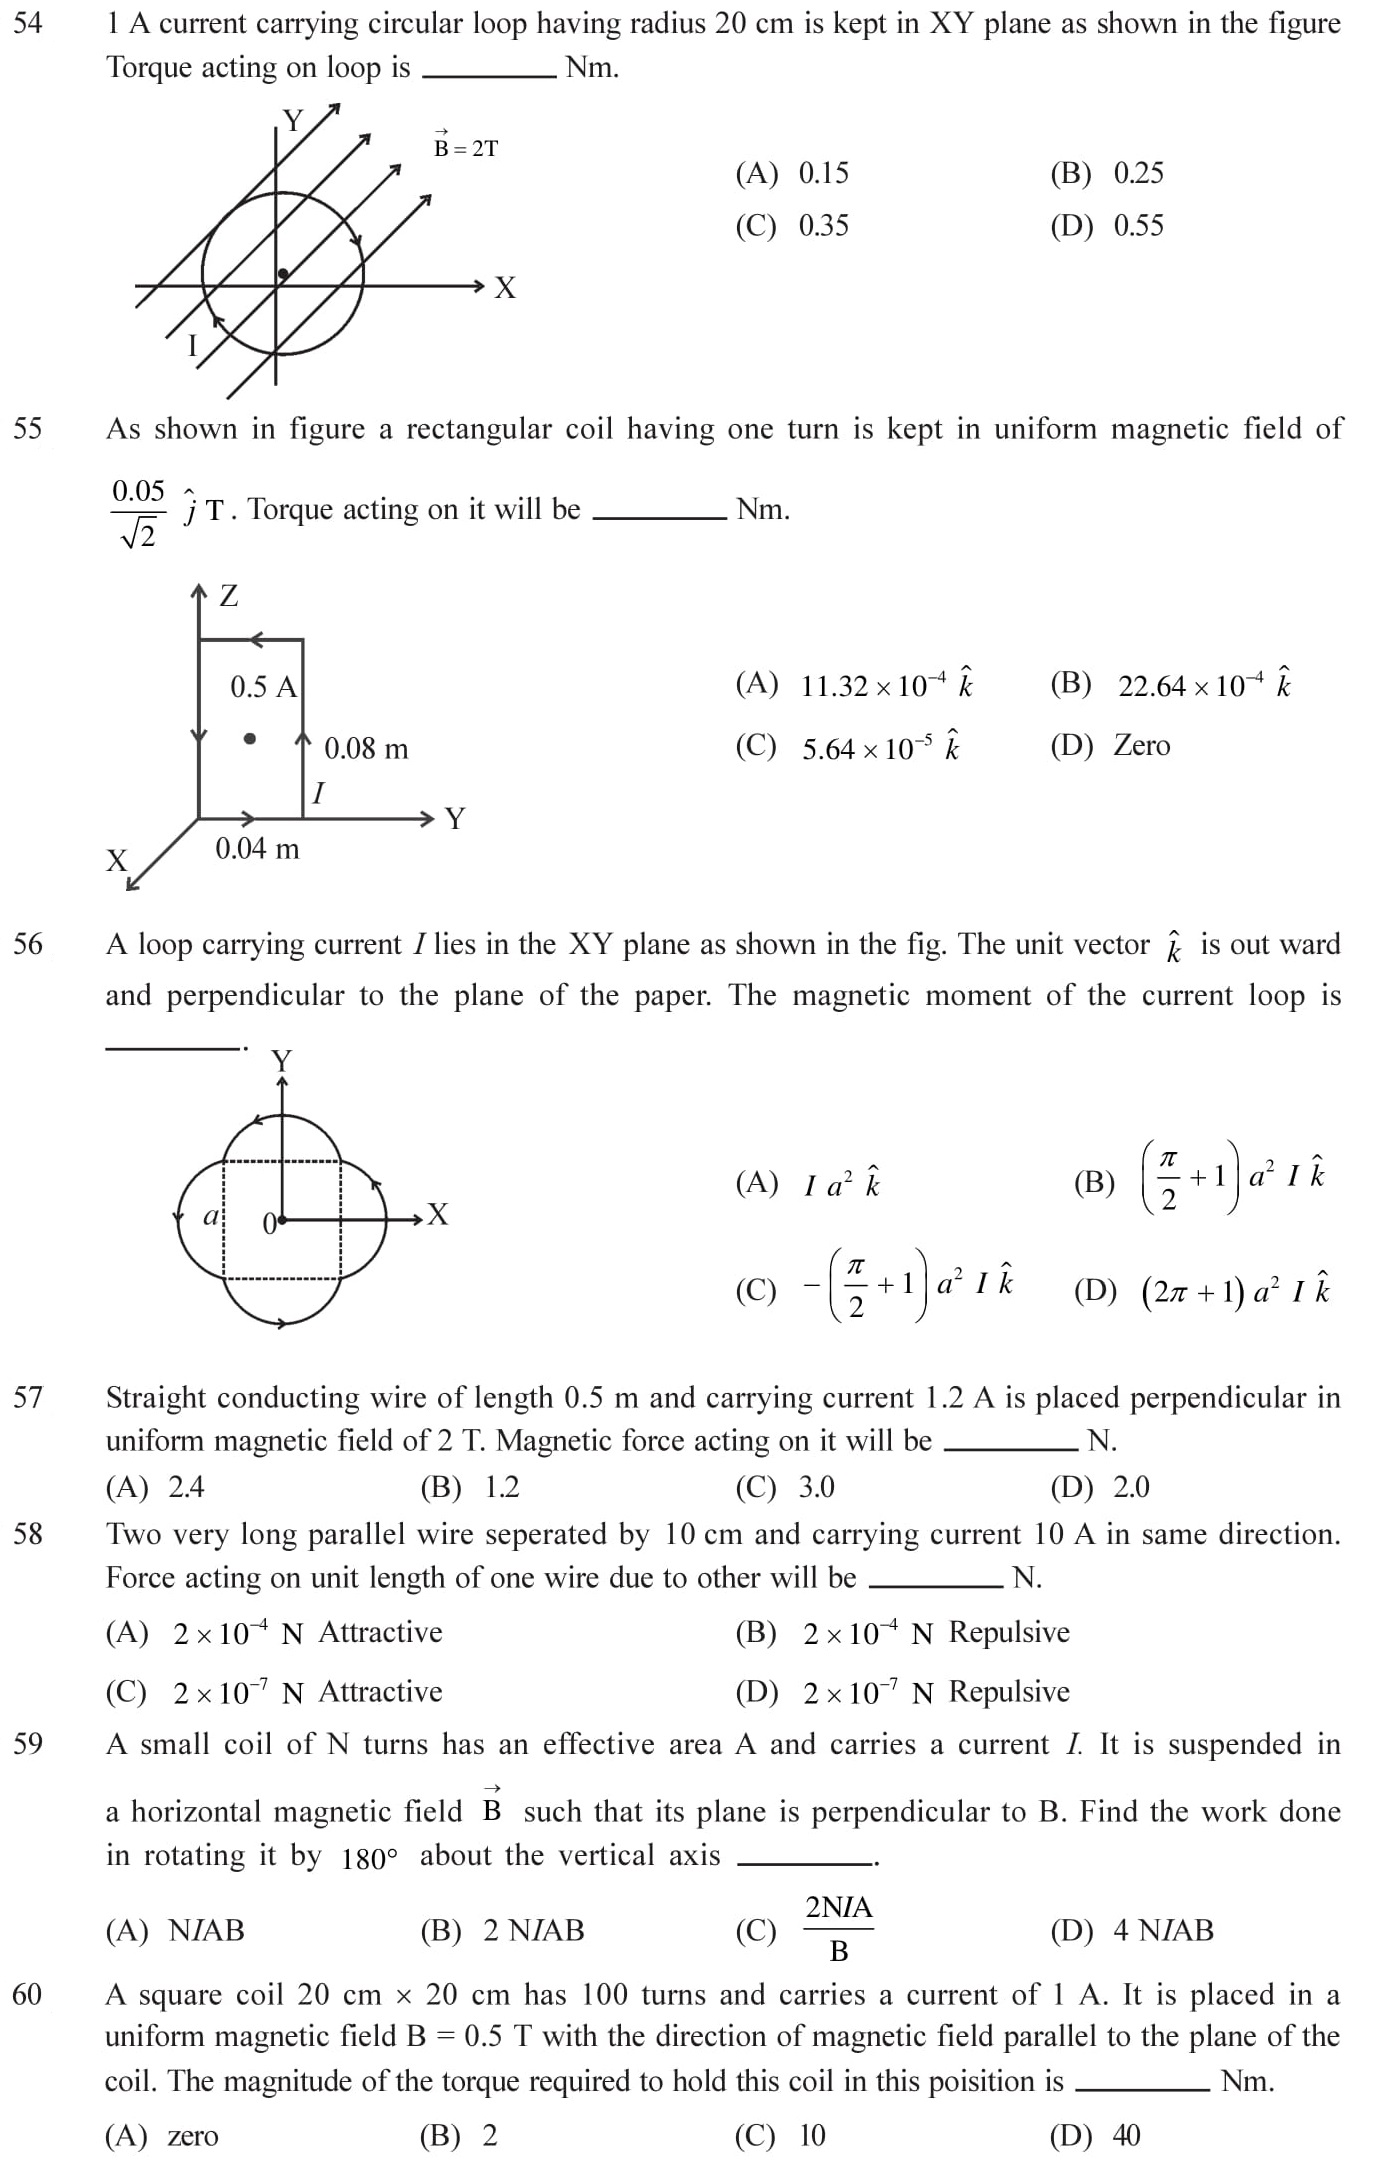 12-Physics-Moving-Charges-Magnetism-NEET-JEE-IIT-Questions-Topic-10